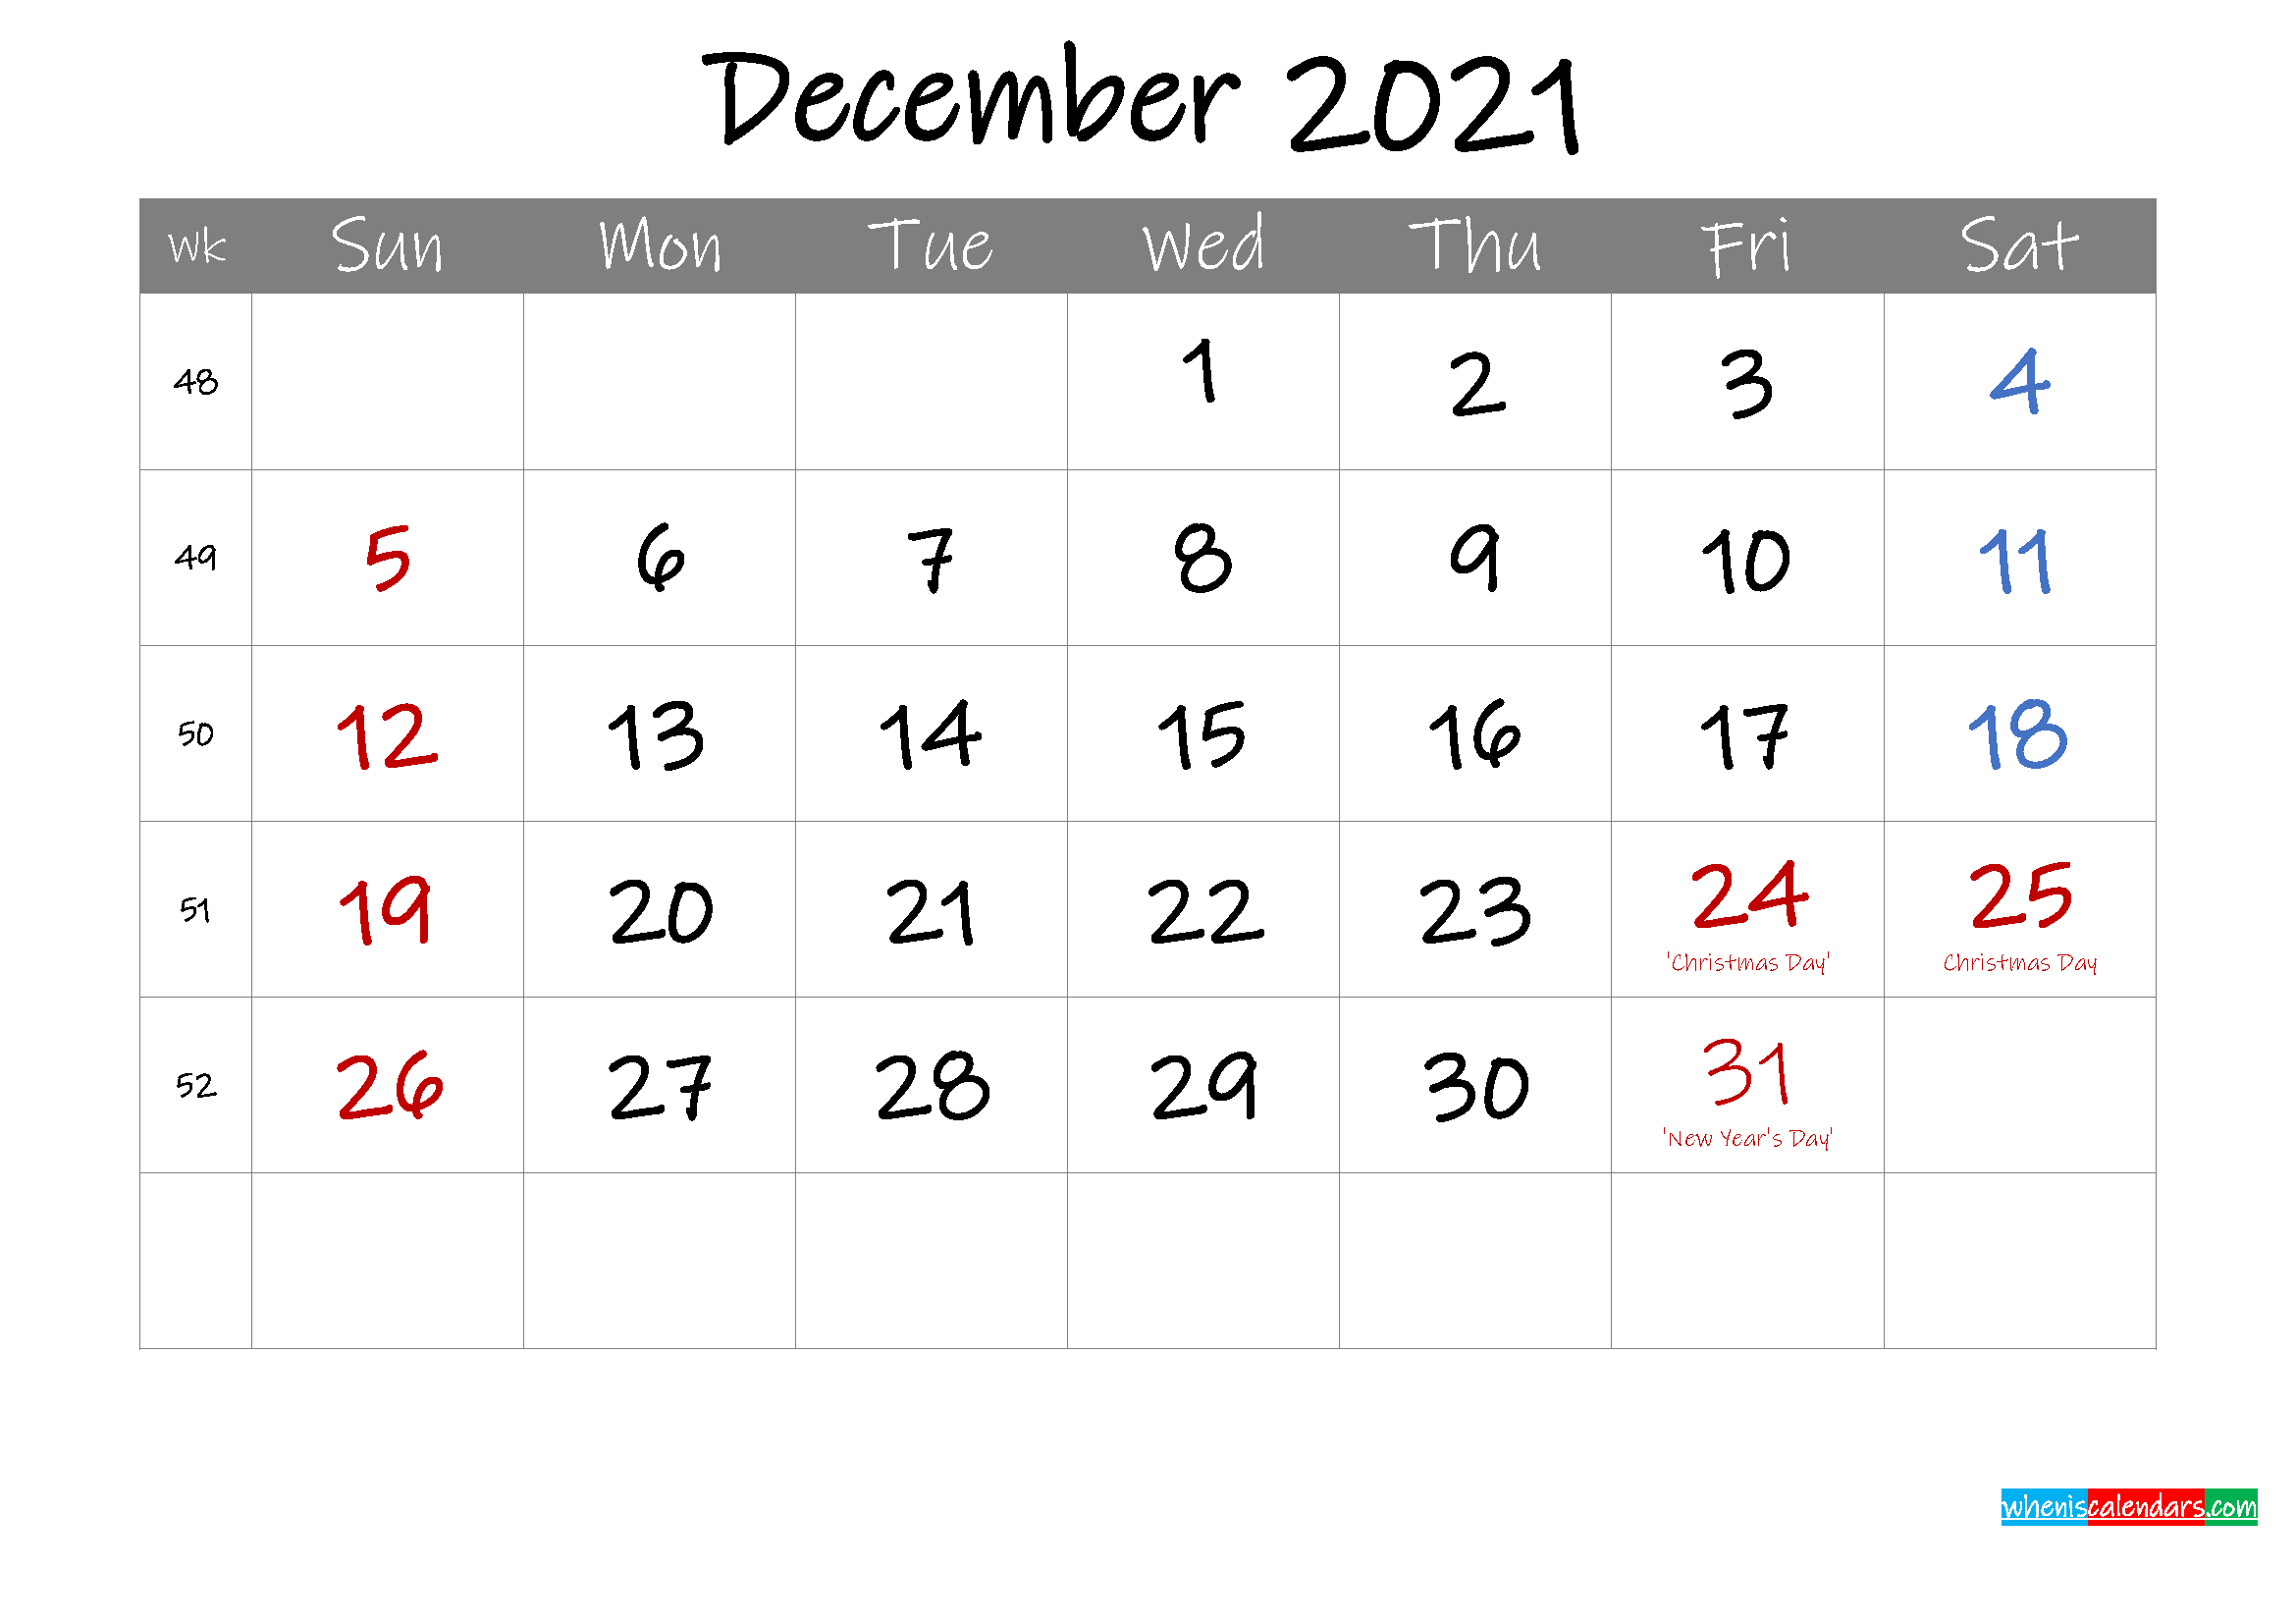 Editable December 2021 Calendar with Holidays